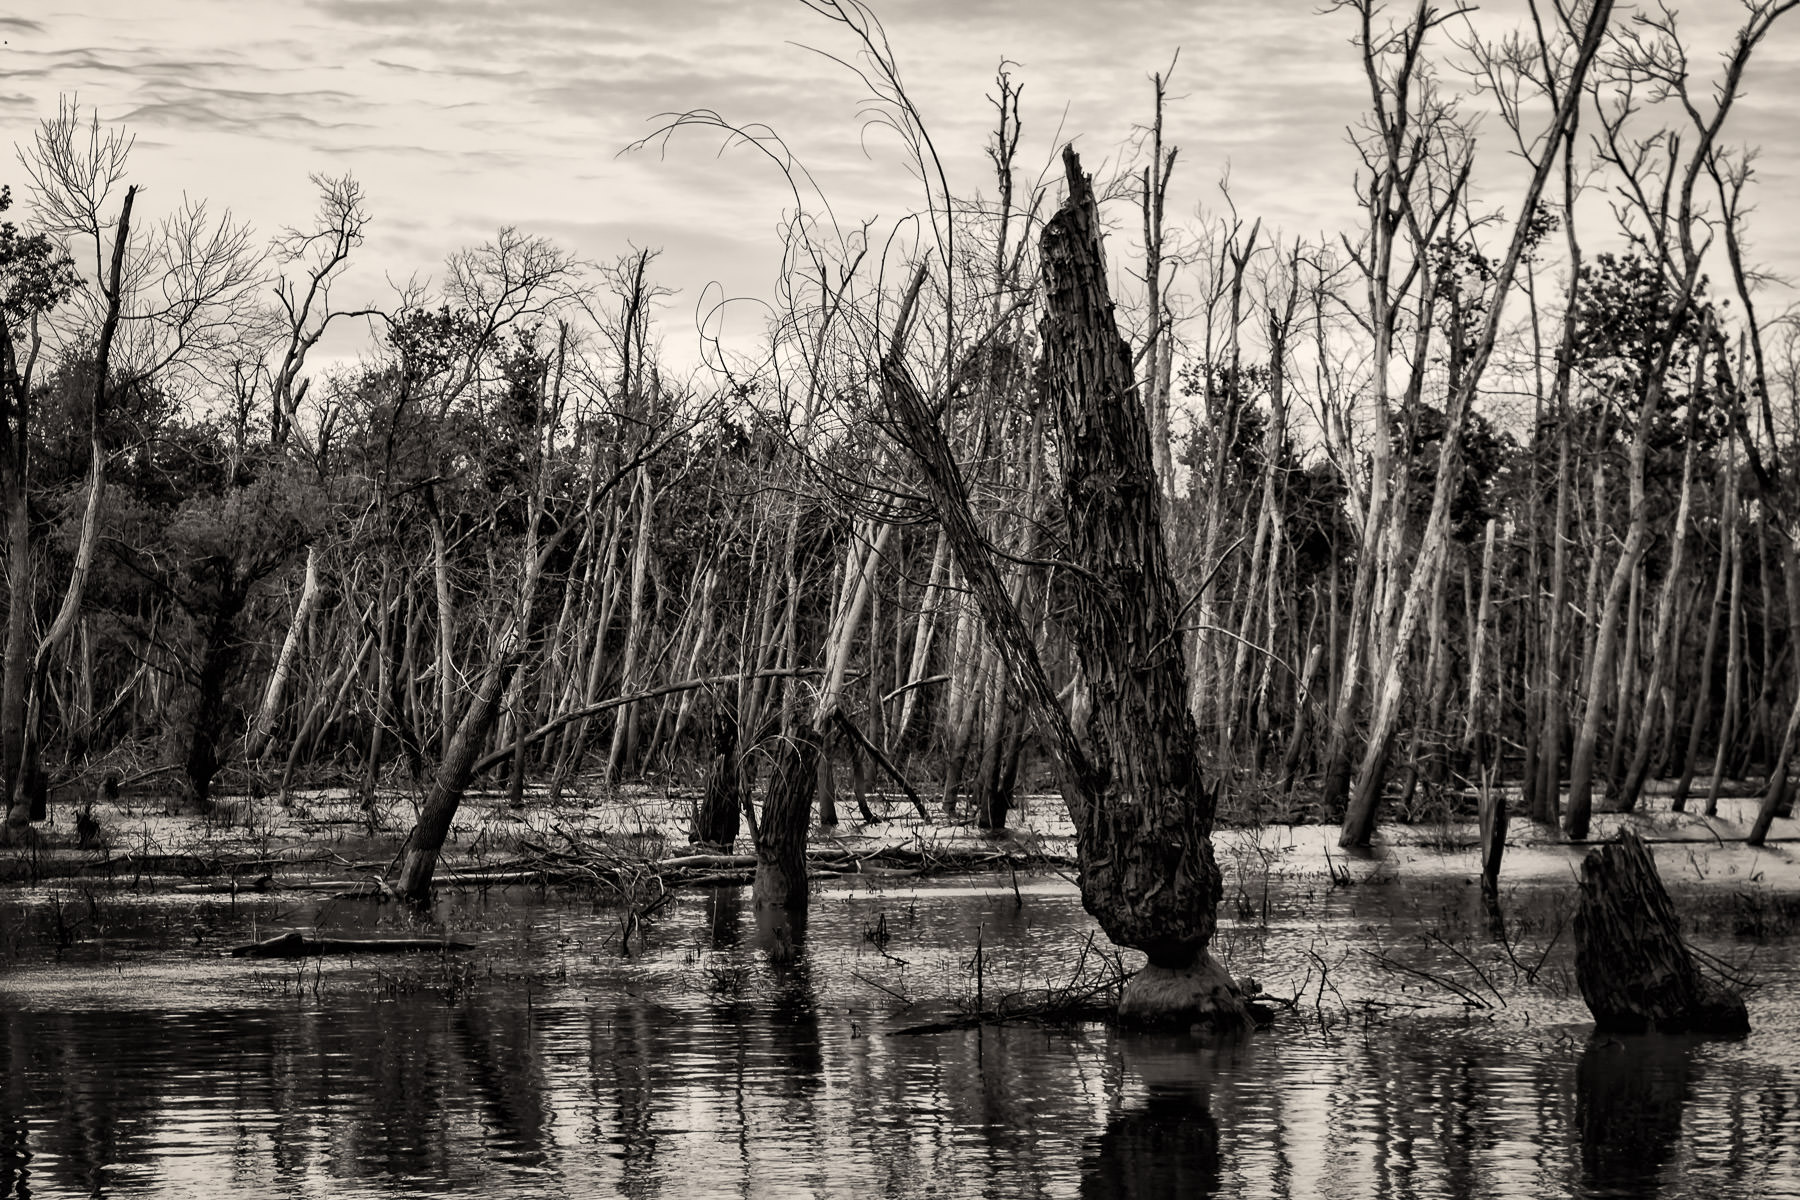 Dead trees rise from the swampy waters at the Hagerman National Wildlife Refuge, Texas.